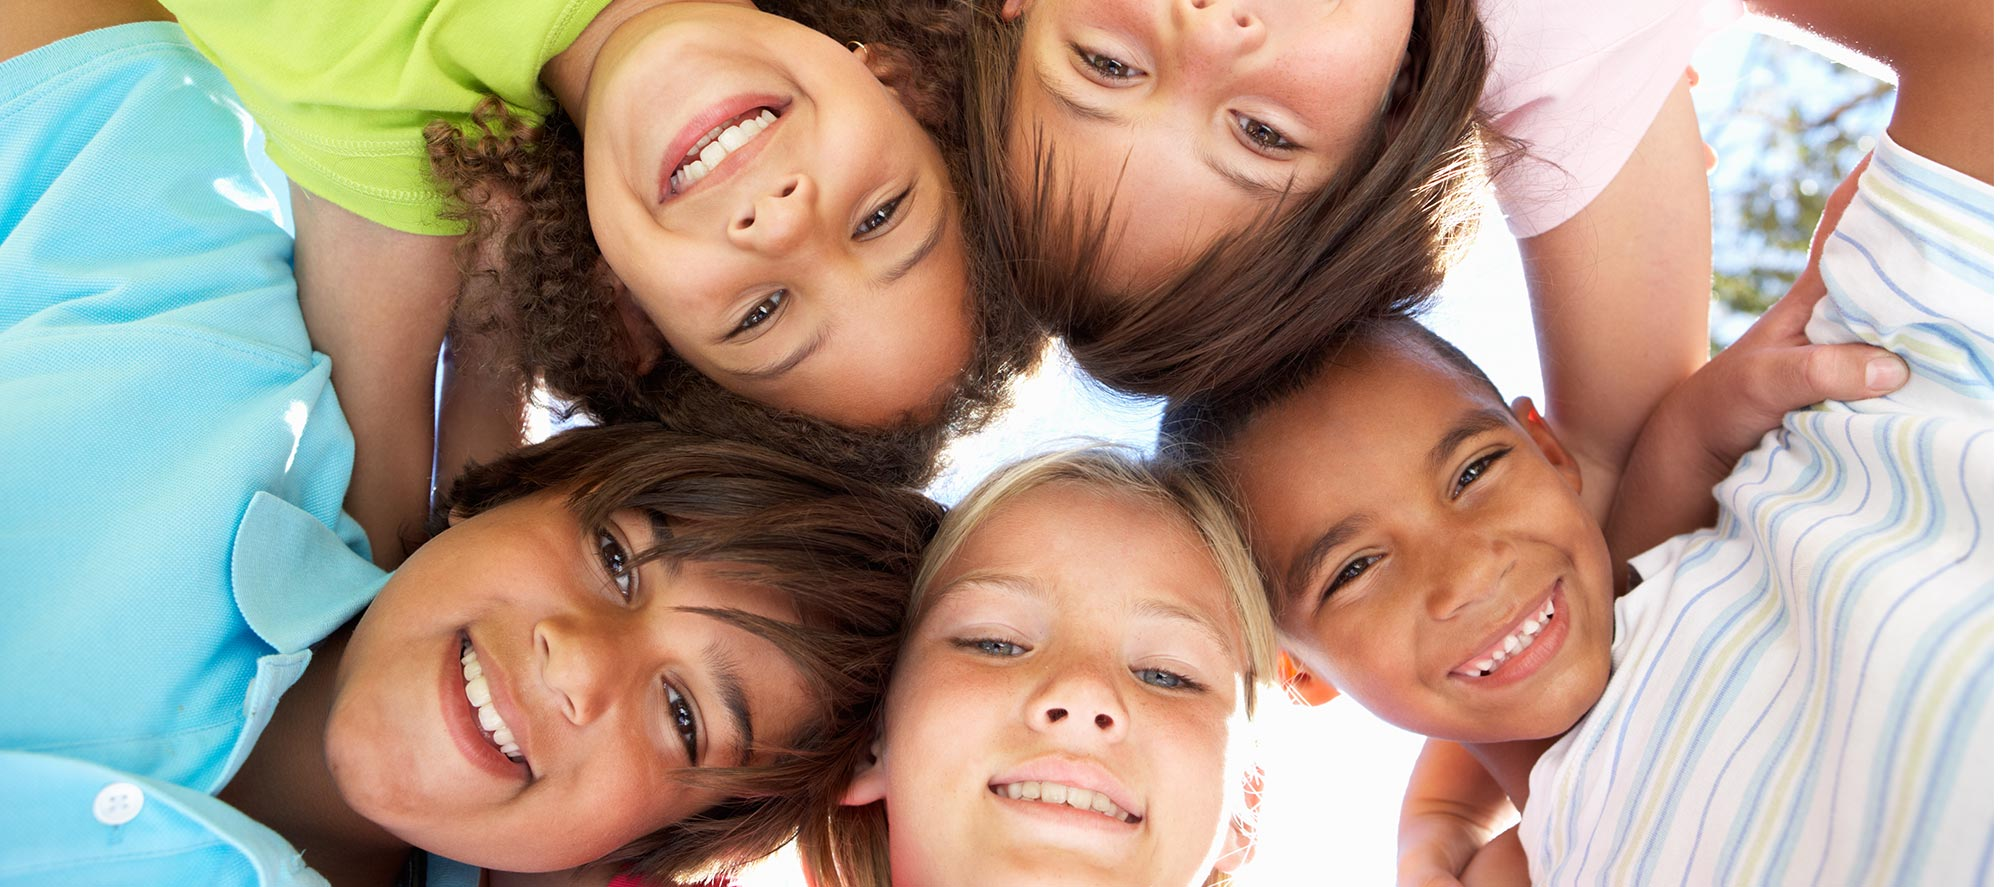 Kids Smiling - Pediatric Dentist in Madison, MS